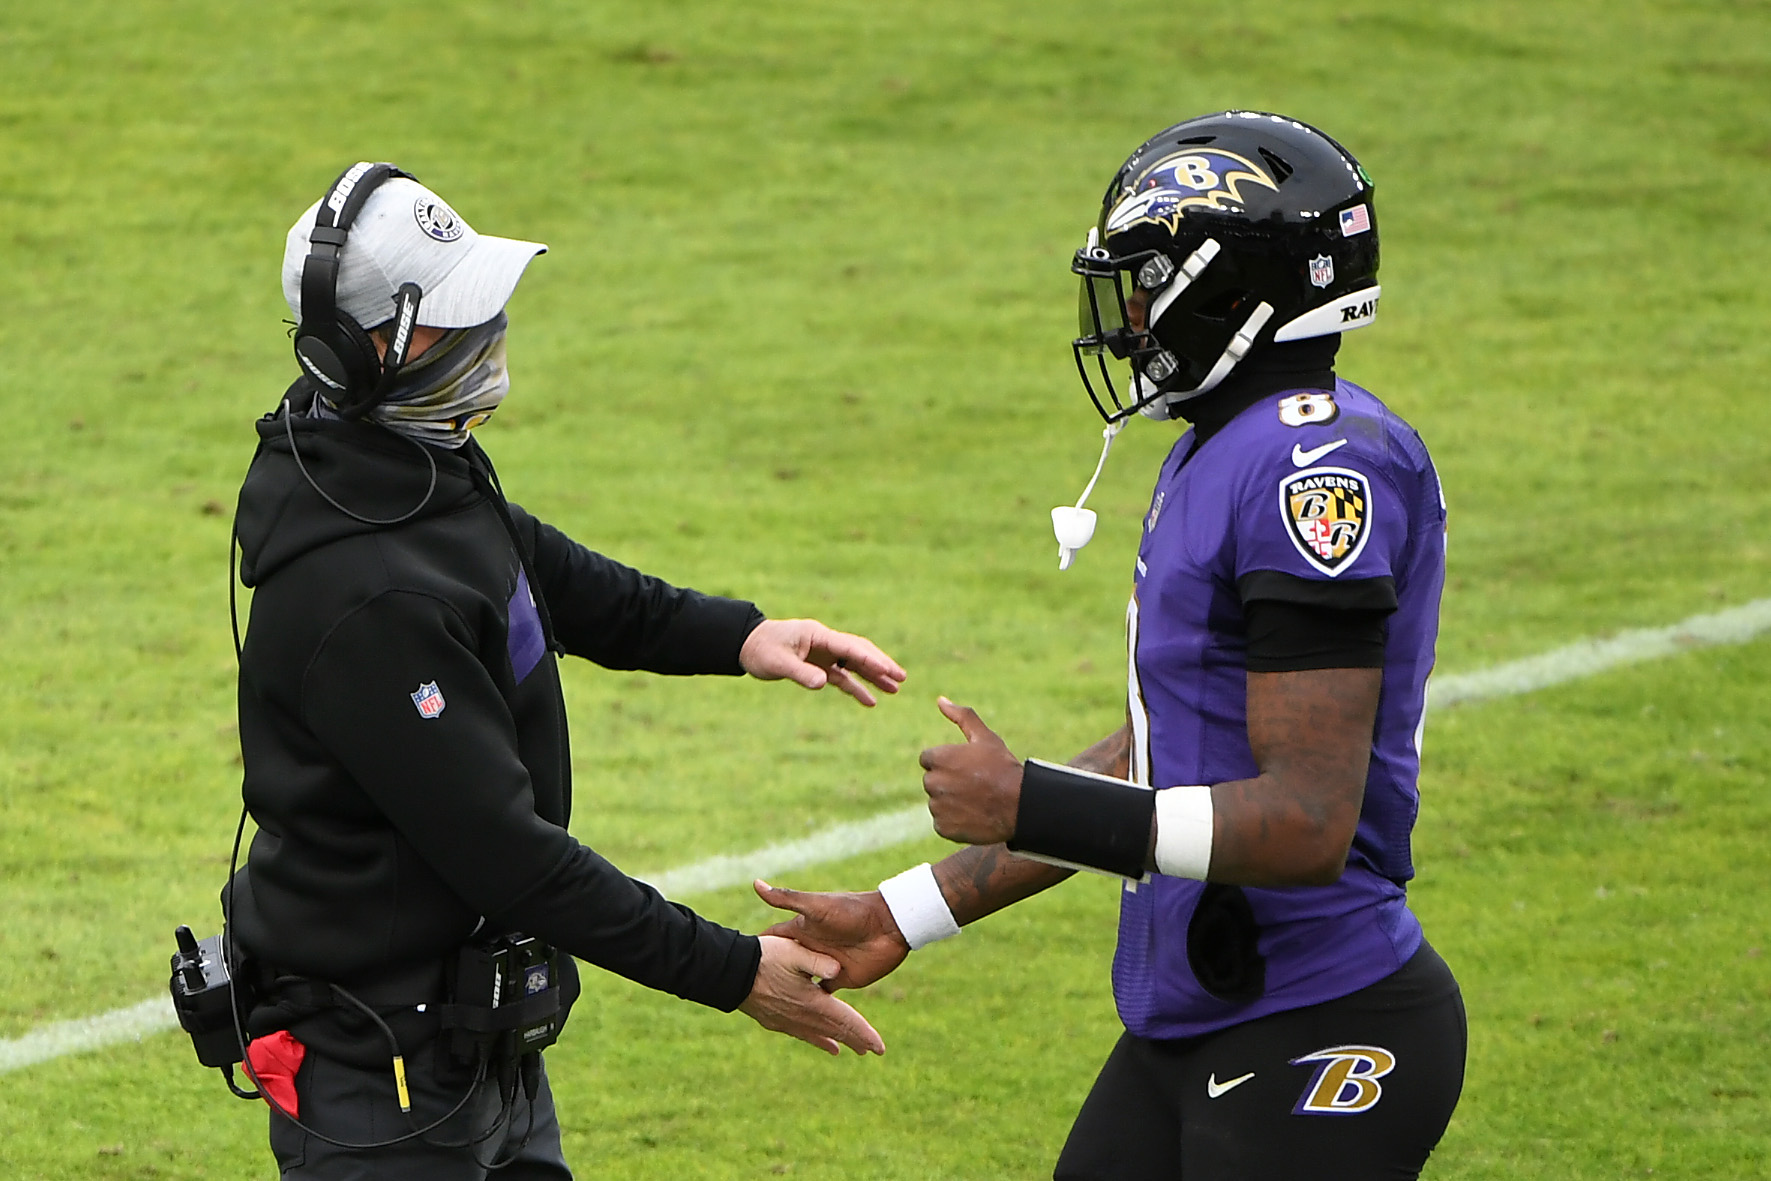 Ravens head coach John Harbaugh doesn't care what critics say about his team's offense despite their flaws in the passing game.